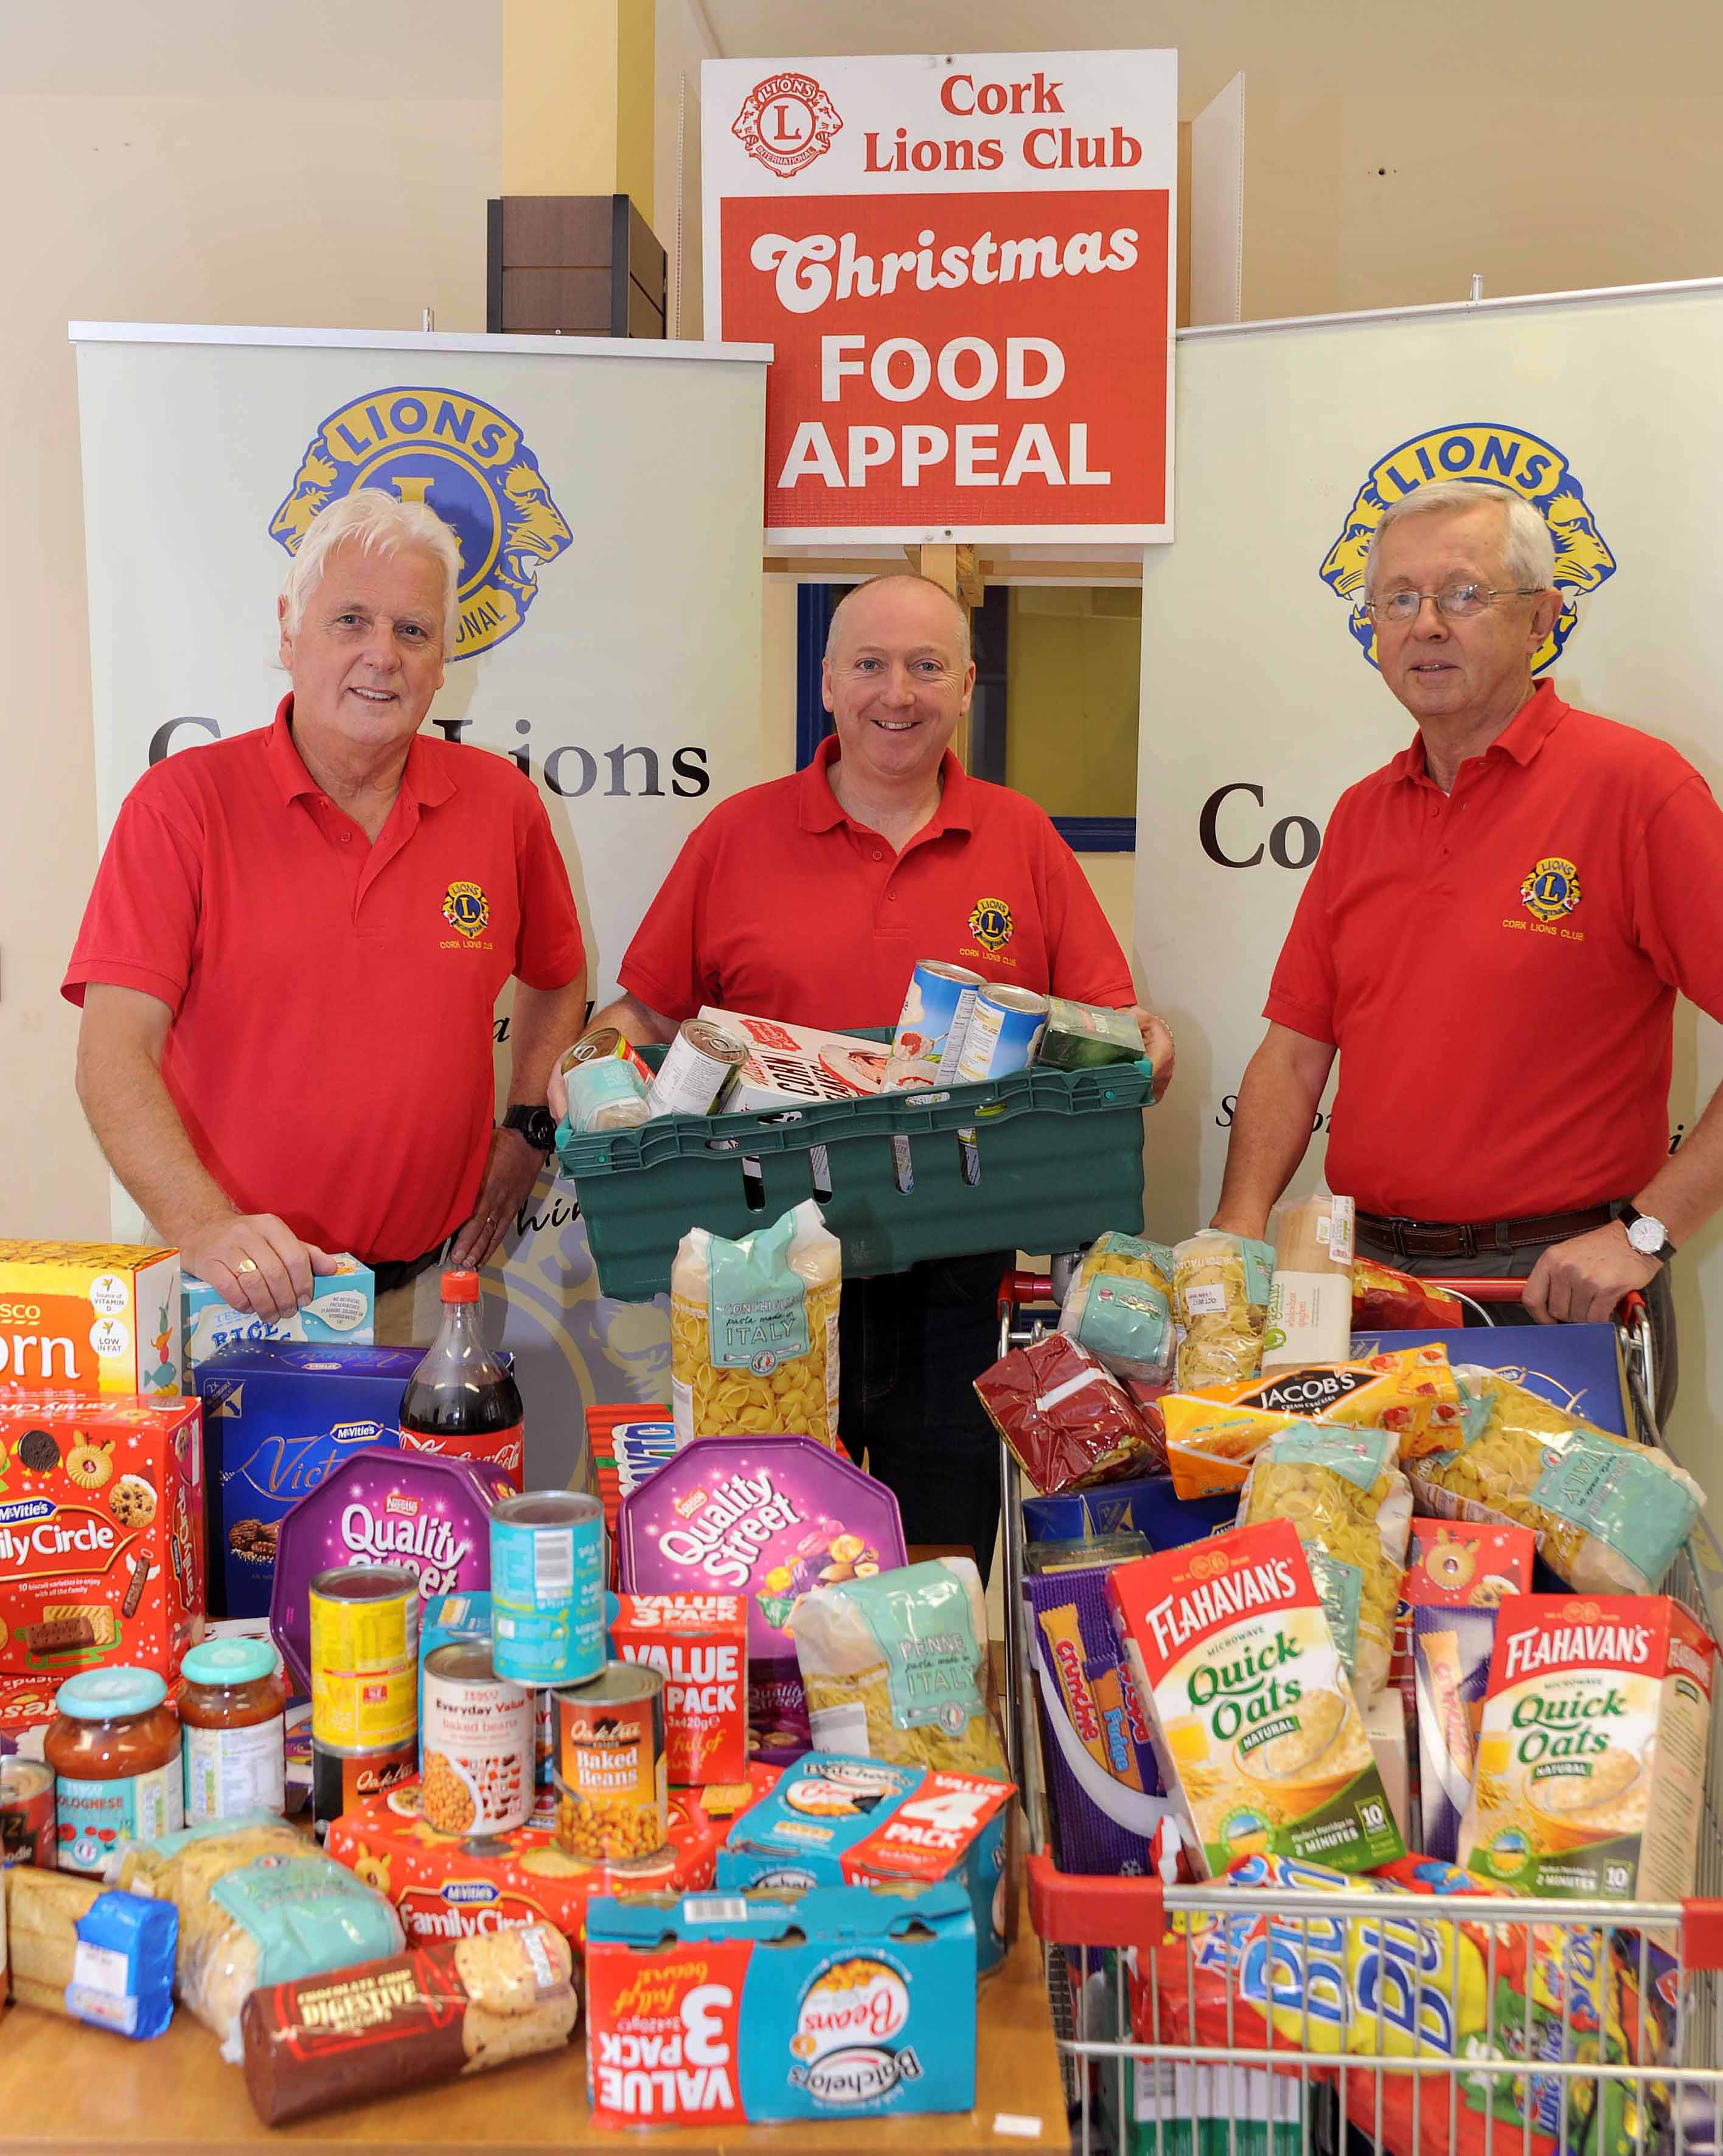 Cork Lions Club Christmas Food appeal begins today